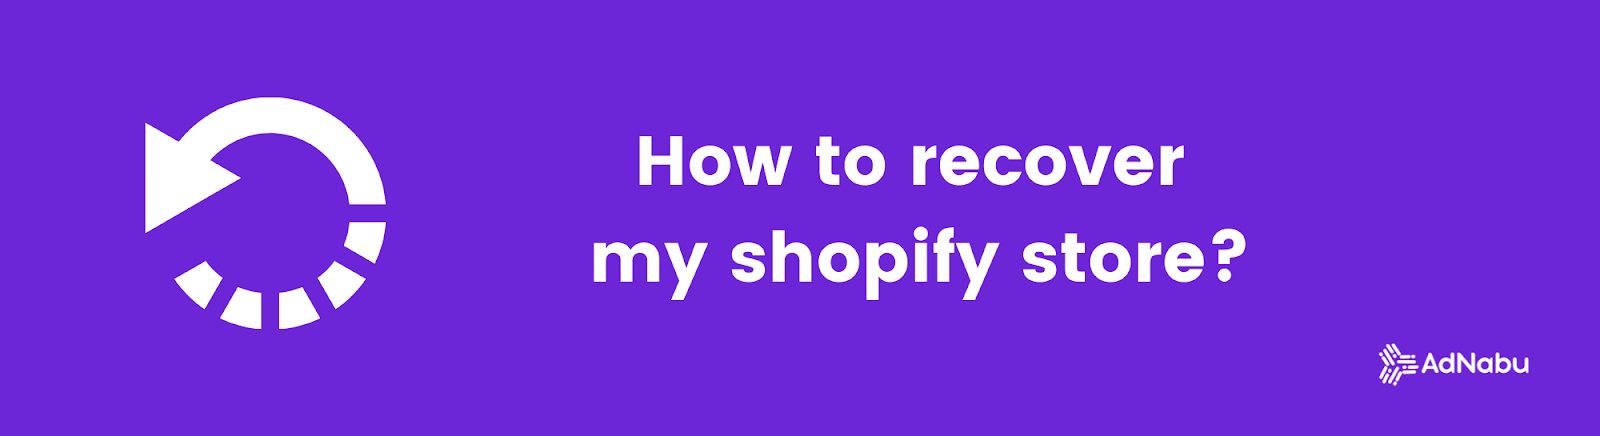 How to Recover My Shopify Store